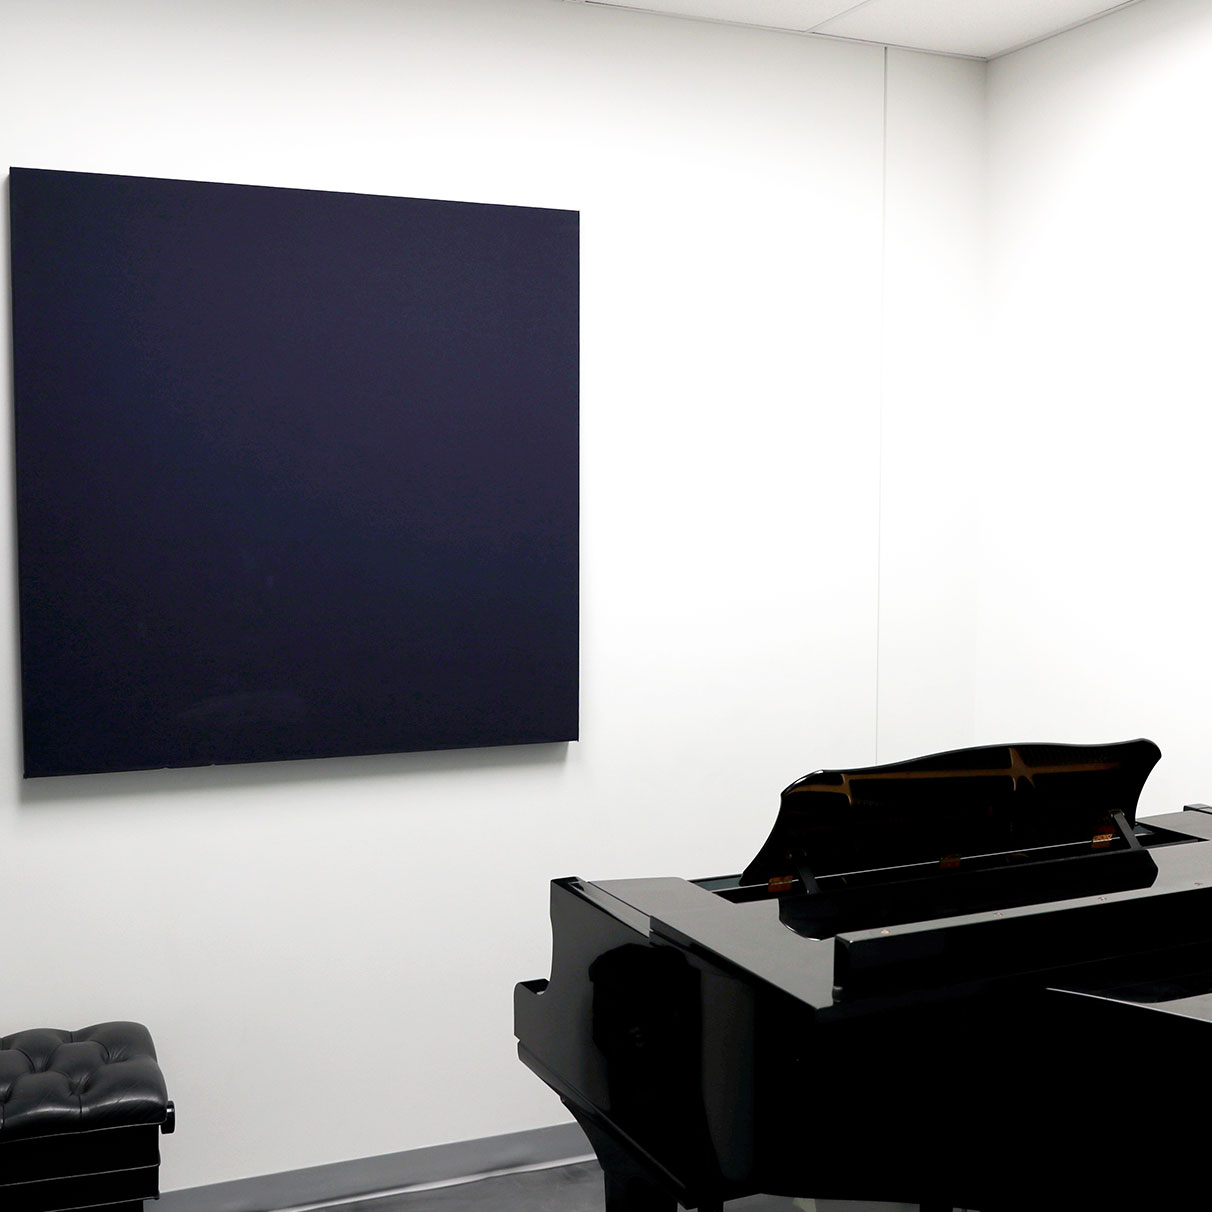 practice room has a black grand piano with a leather stool to sit with sound proofing on walls